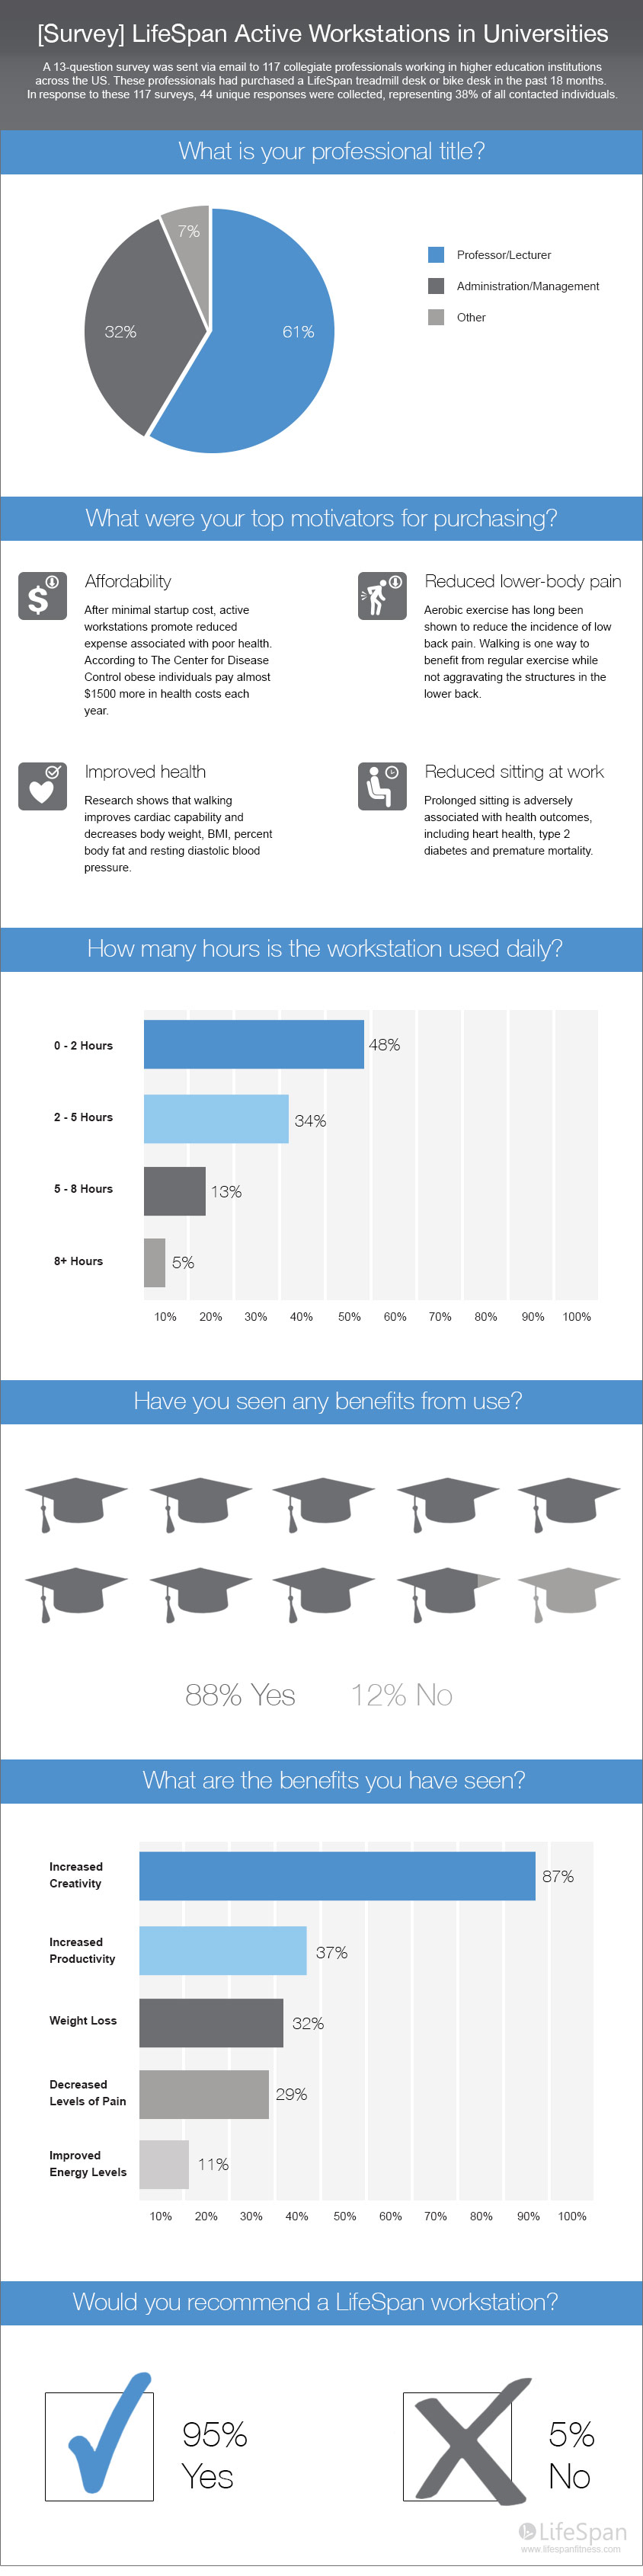 education survey active workstation full infographic